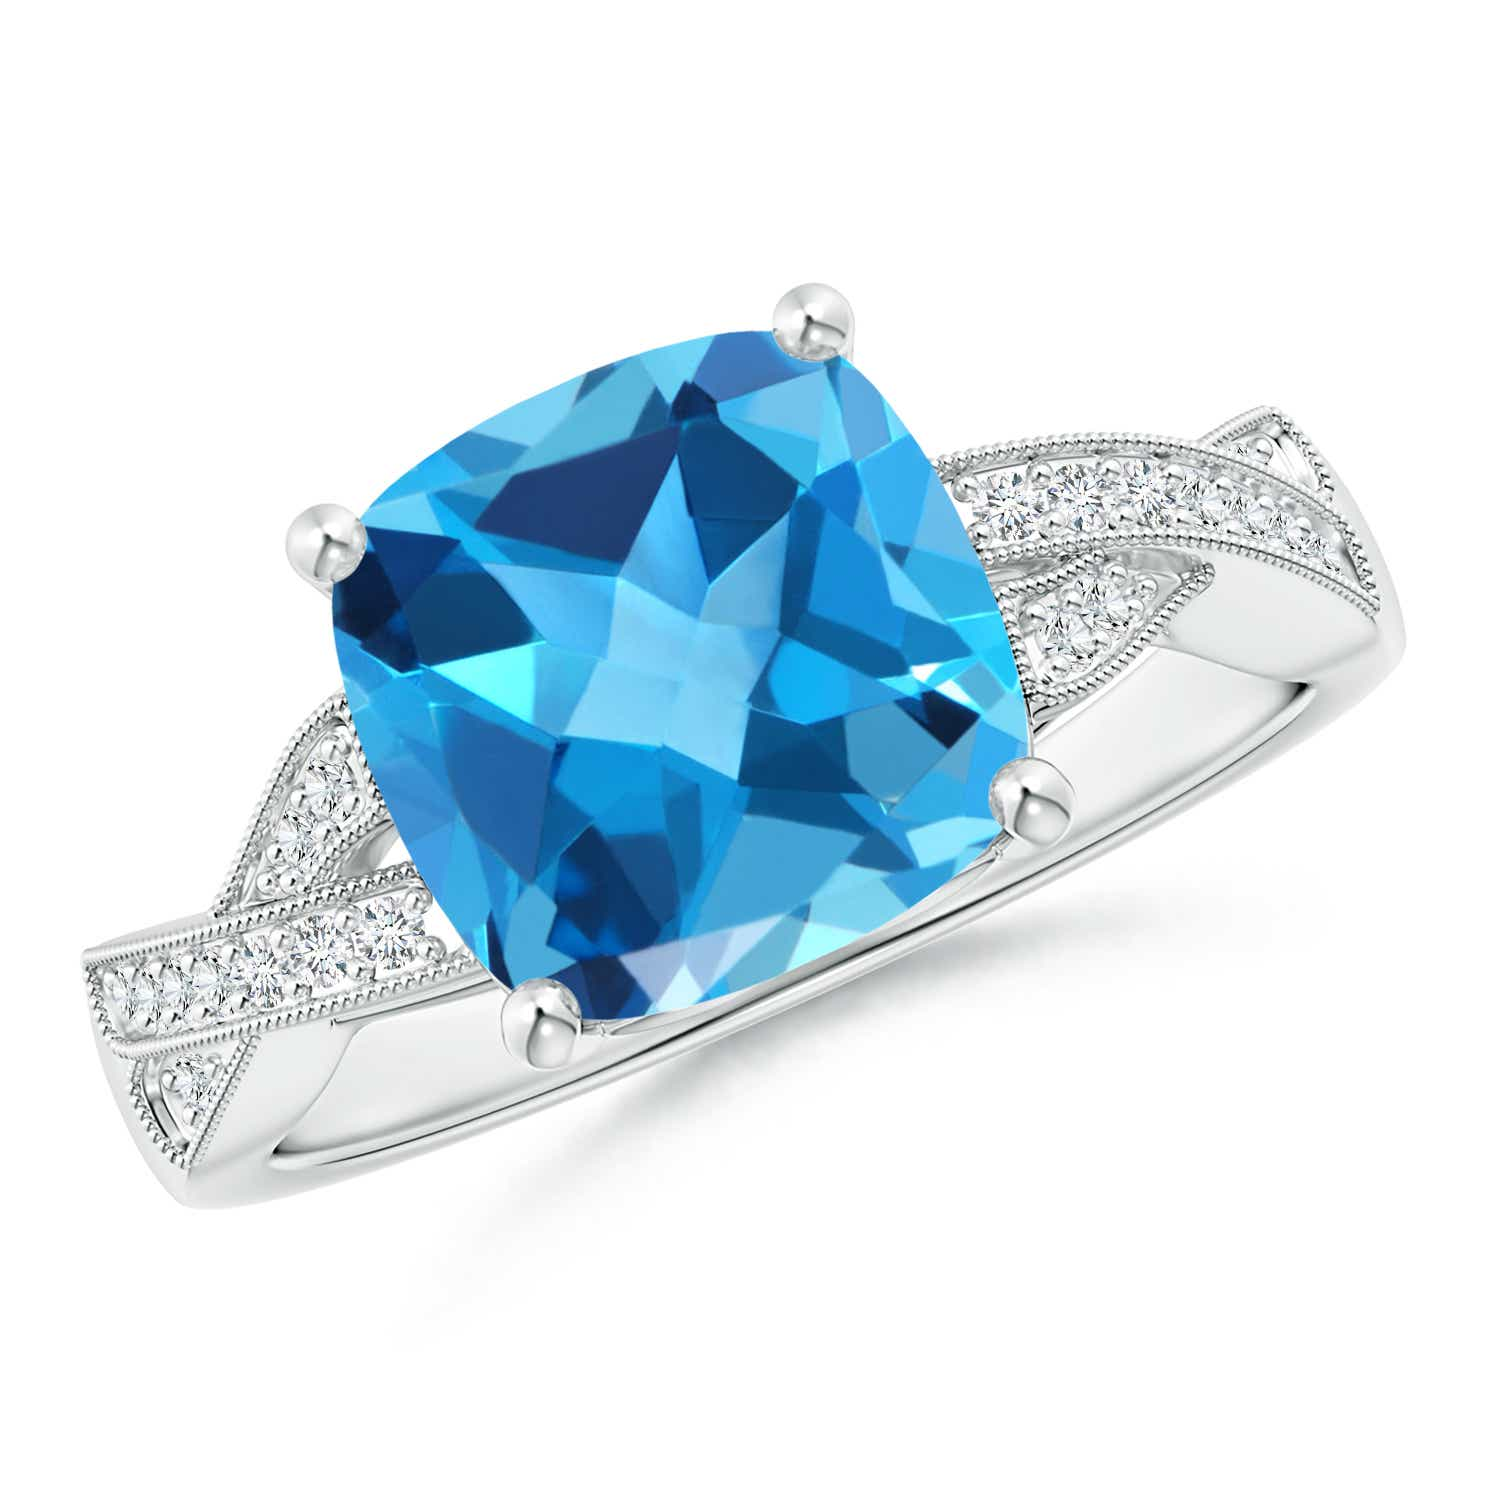 Solitaire Cushion Swiss Blue Topaz Criss Cross Ring with Diamonds - Angara.com